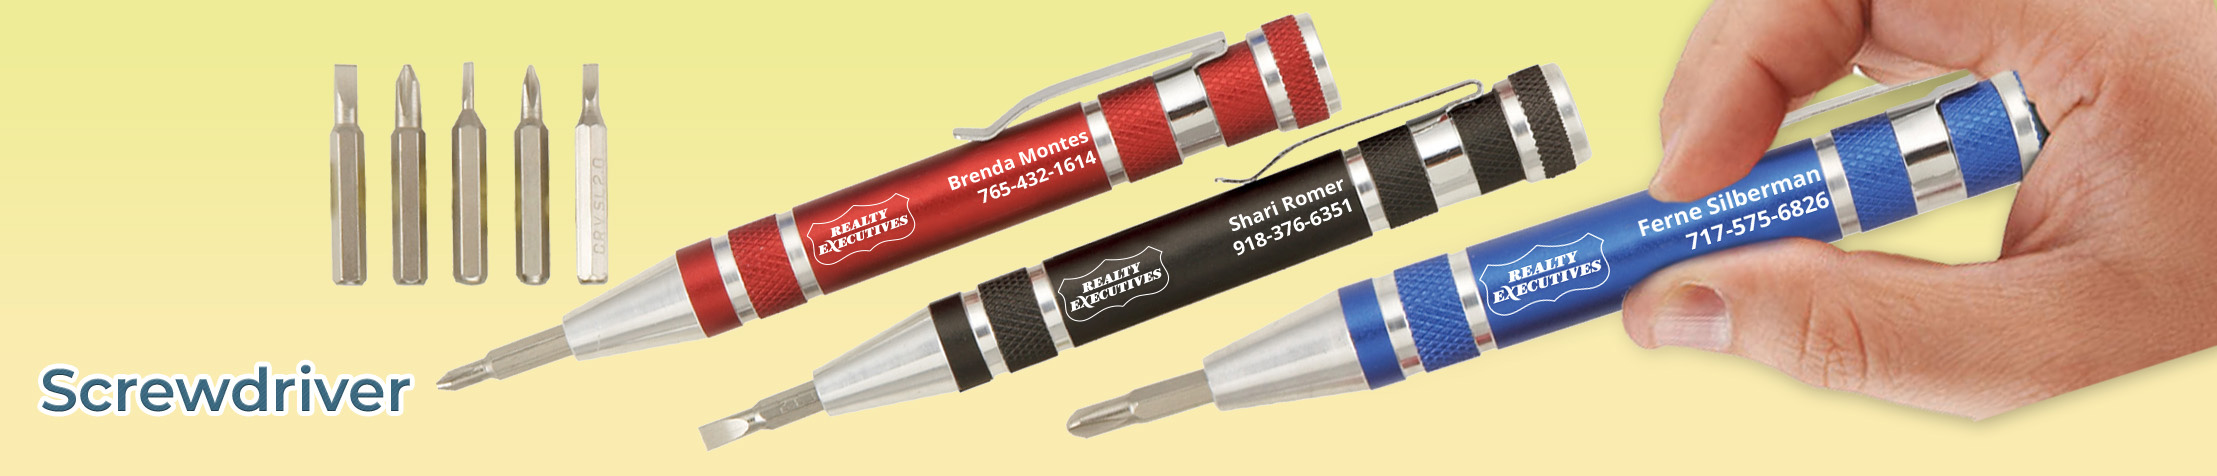 Realty Executives Real Estate Flashlights - Realty Executives personalized realtor promotional products | BestPrintBuy.com